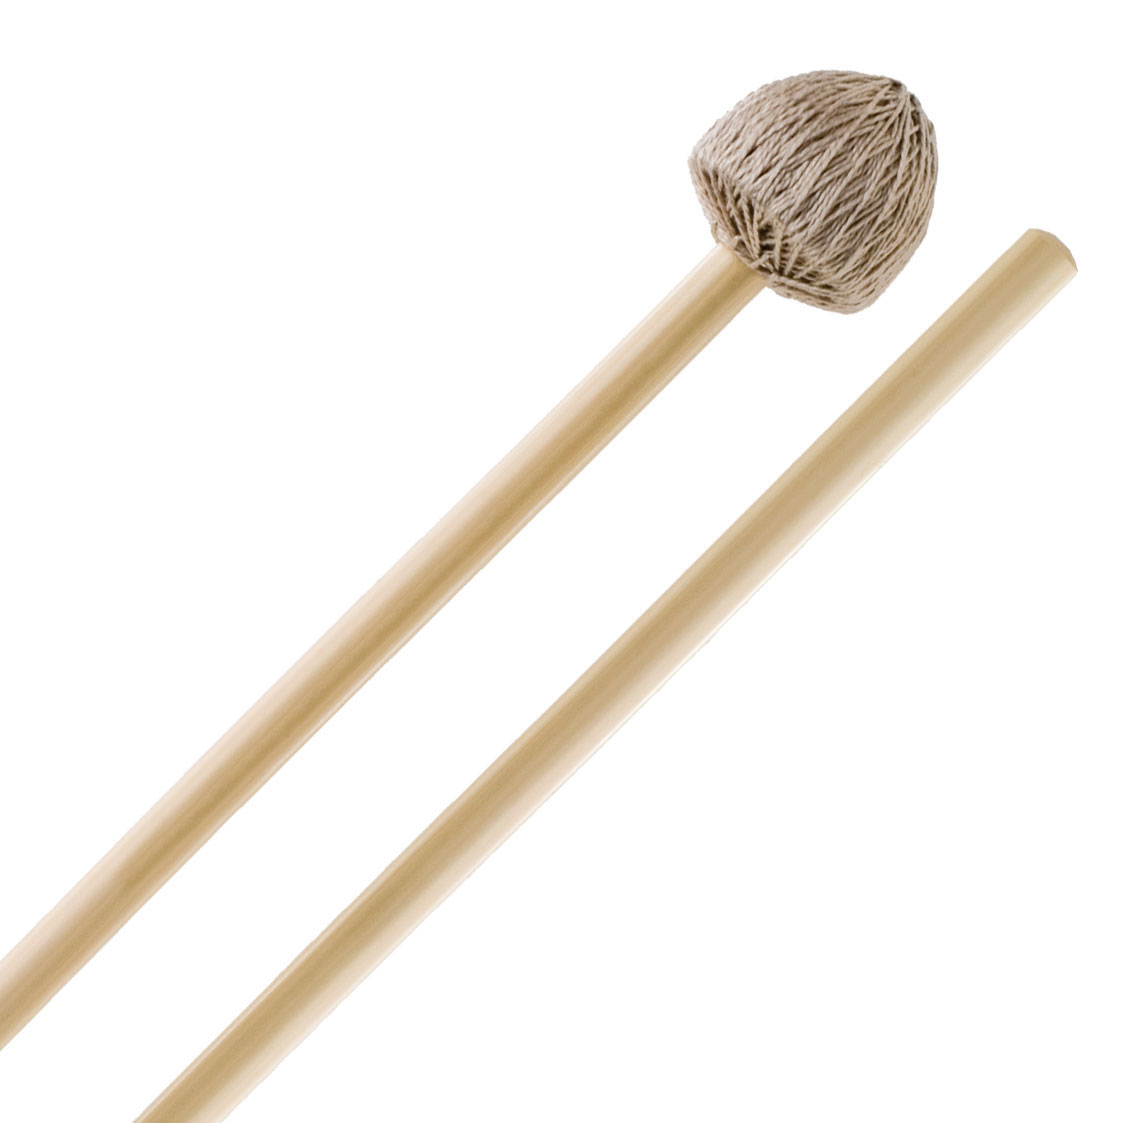 Promark Jeff Moore Signature Medium Vibraphone Mallets